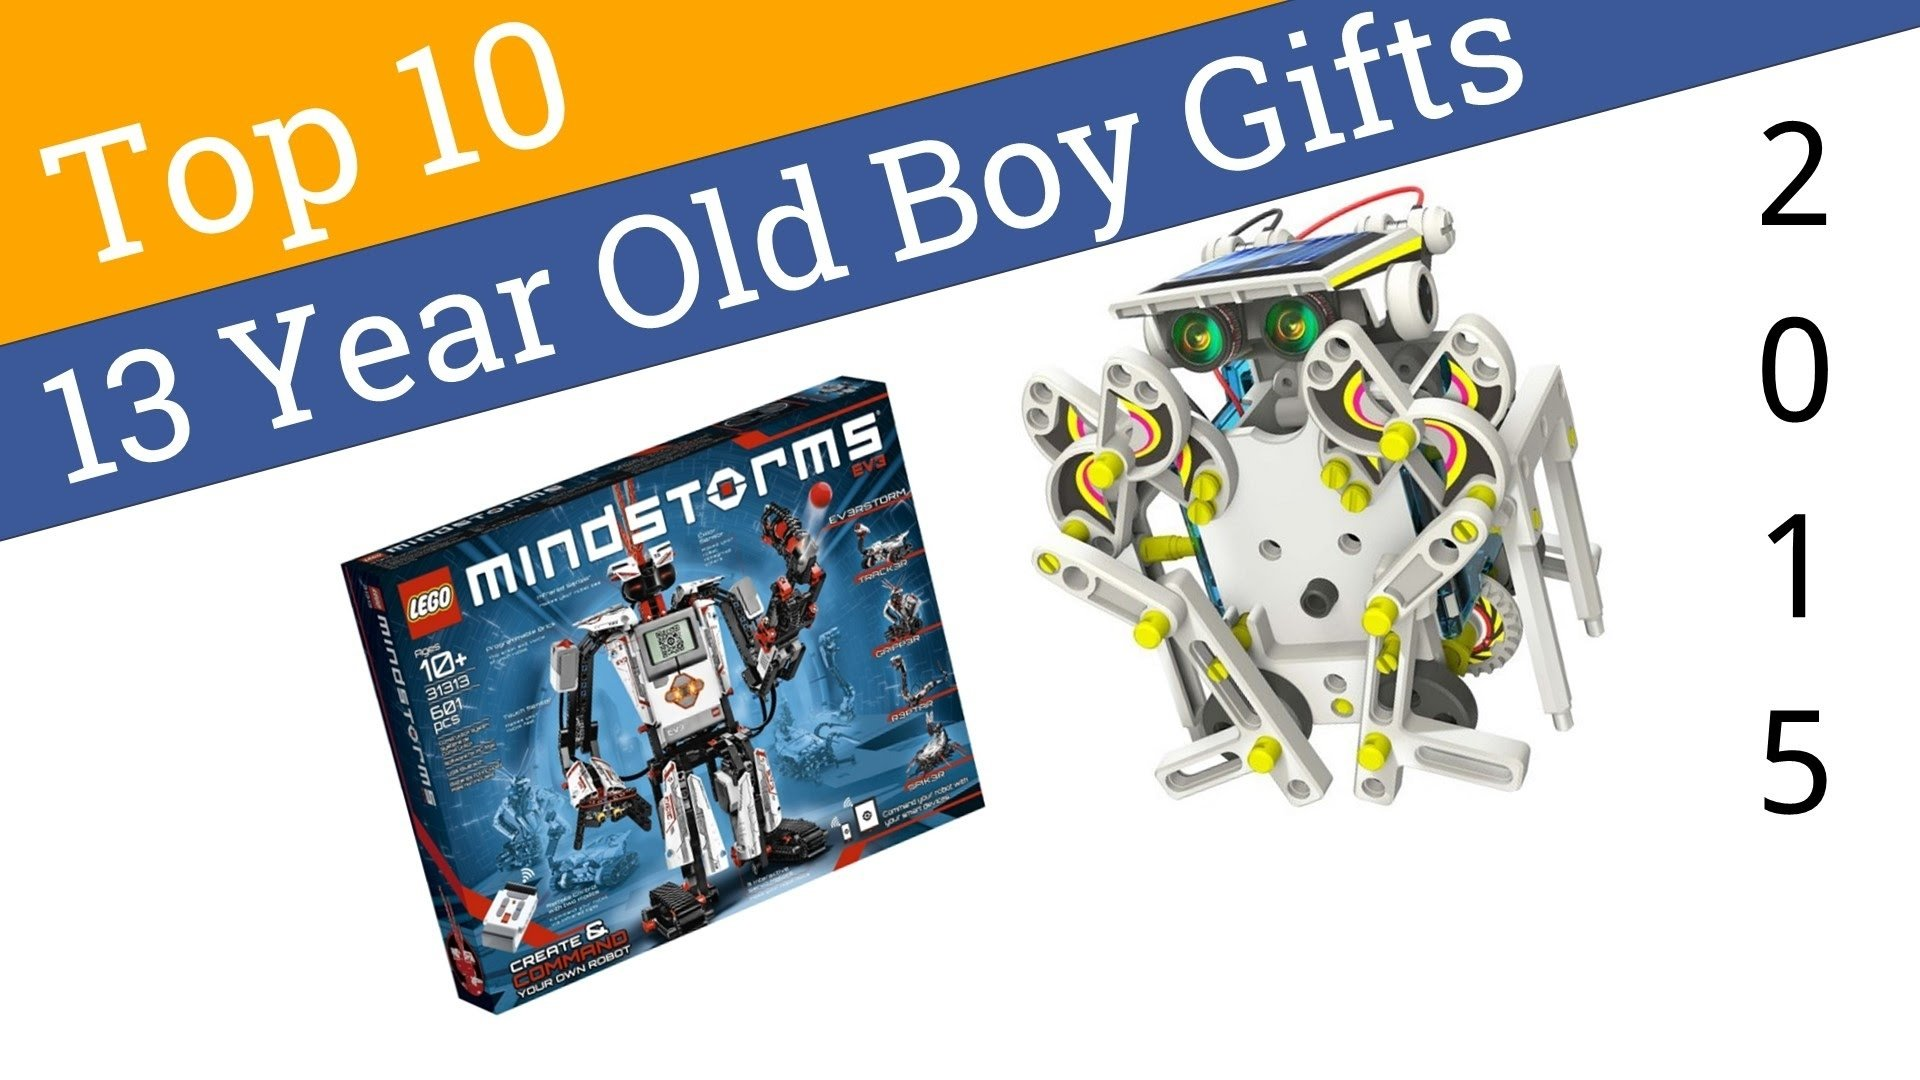 Best Christmas Ideas For 14 Year Old Boy Gifts For 14 Year Old Boys ...